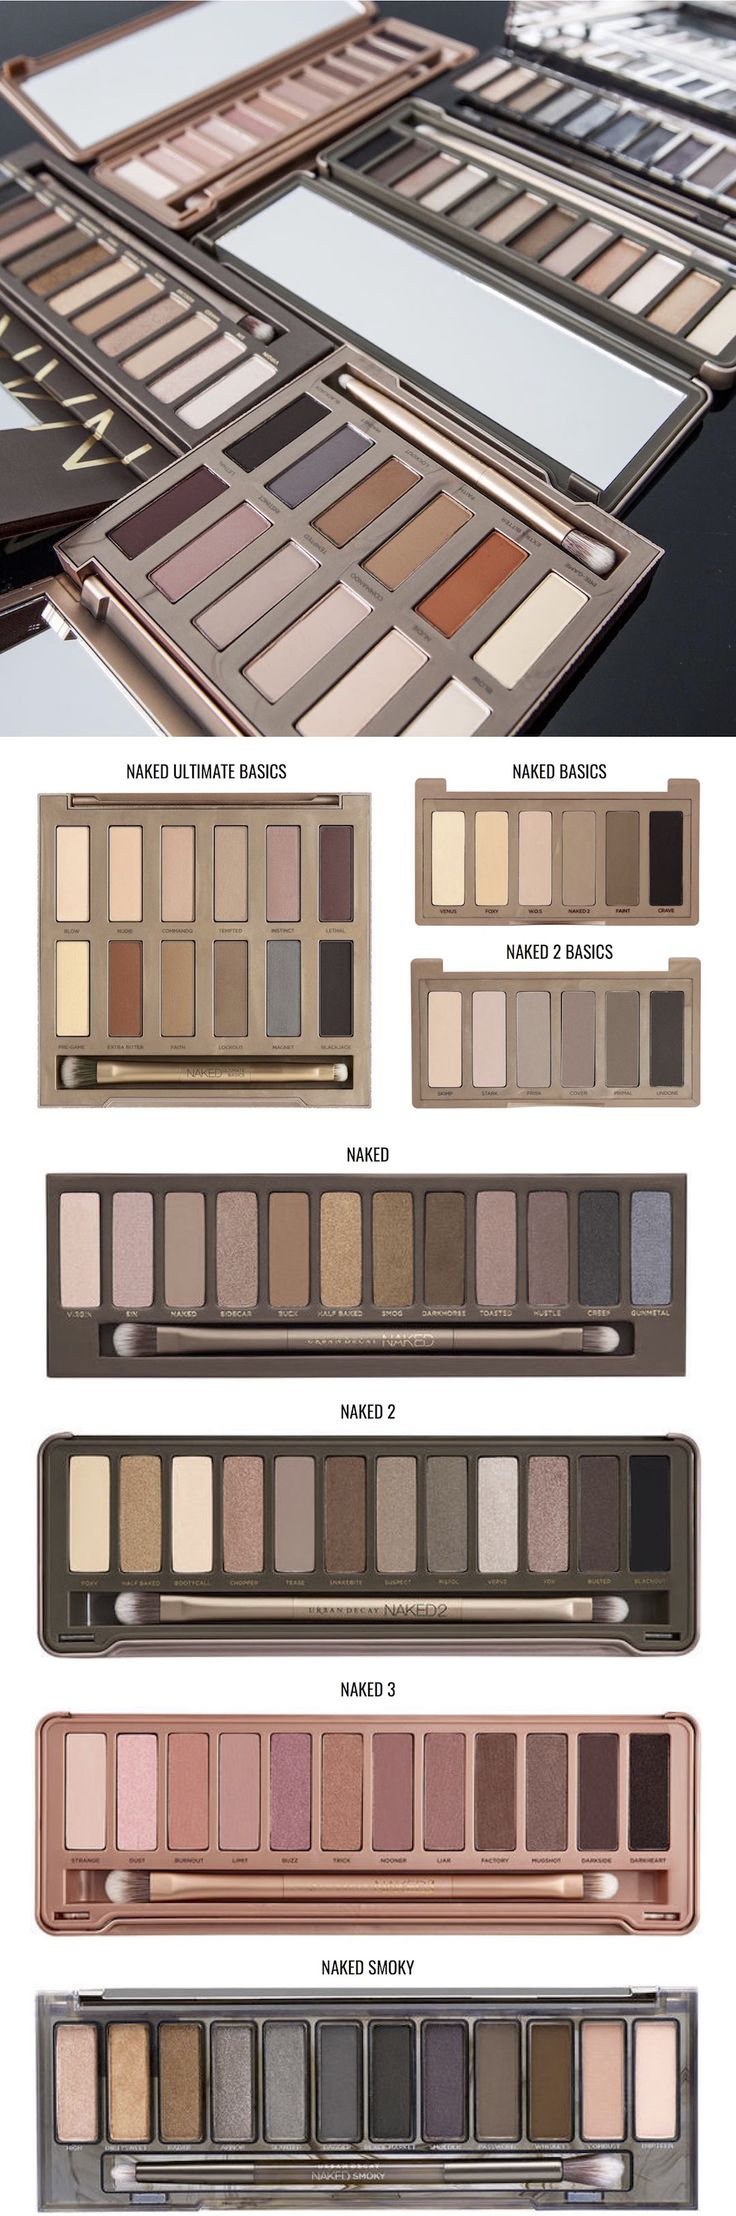 Lançamento: Naked Ultimate Basics Urban Decay http://www.dropsdasdez.com.br/drops-beauty/naked-ultimate-basics-urban-decay/